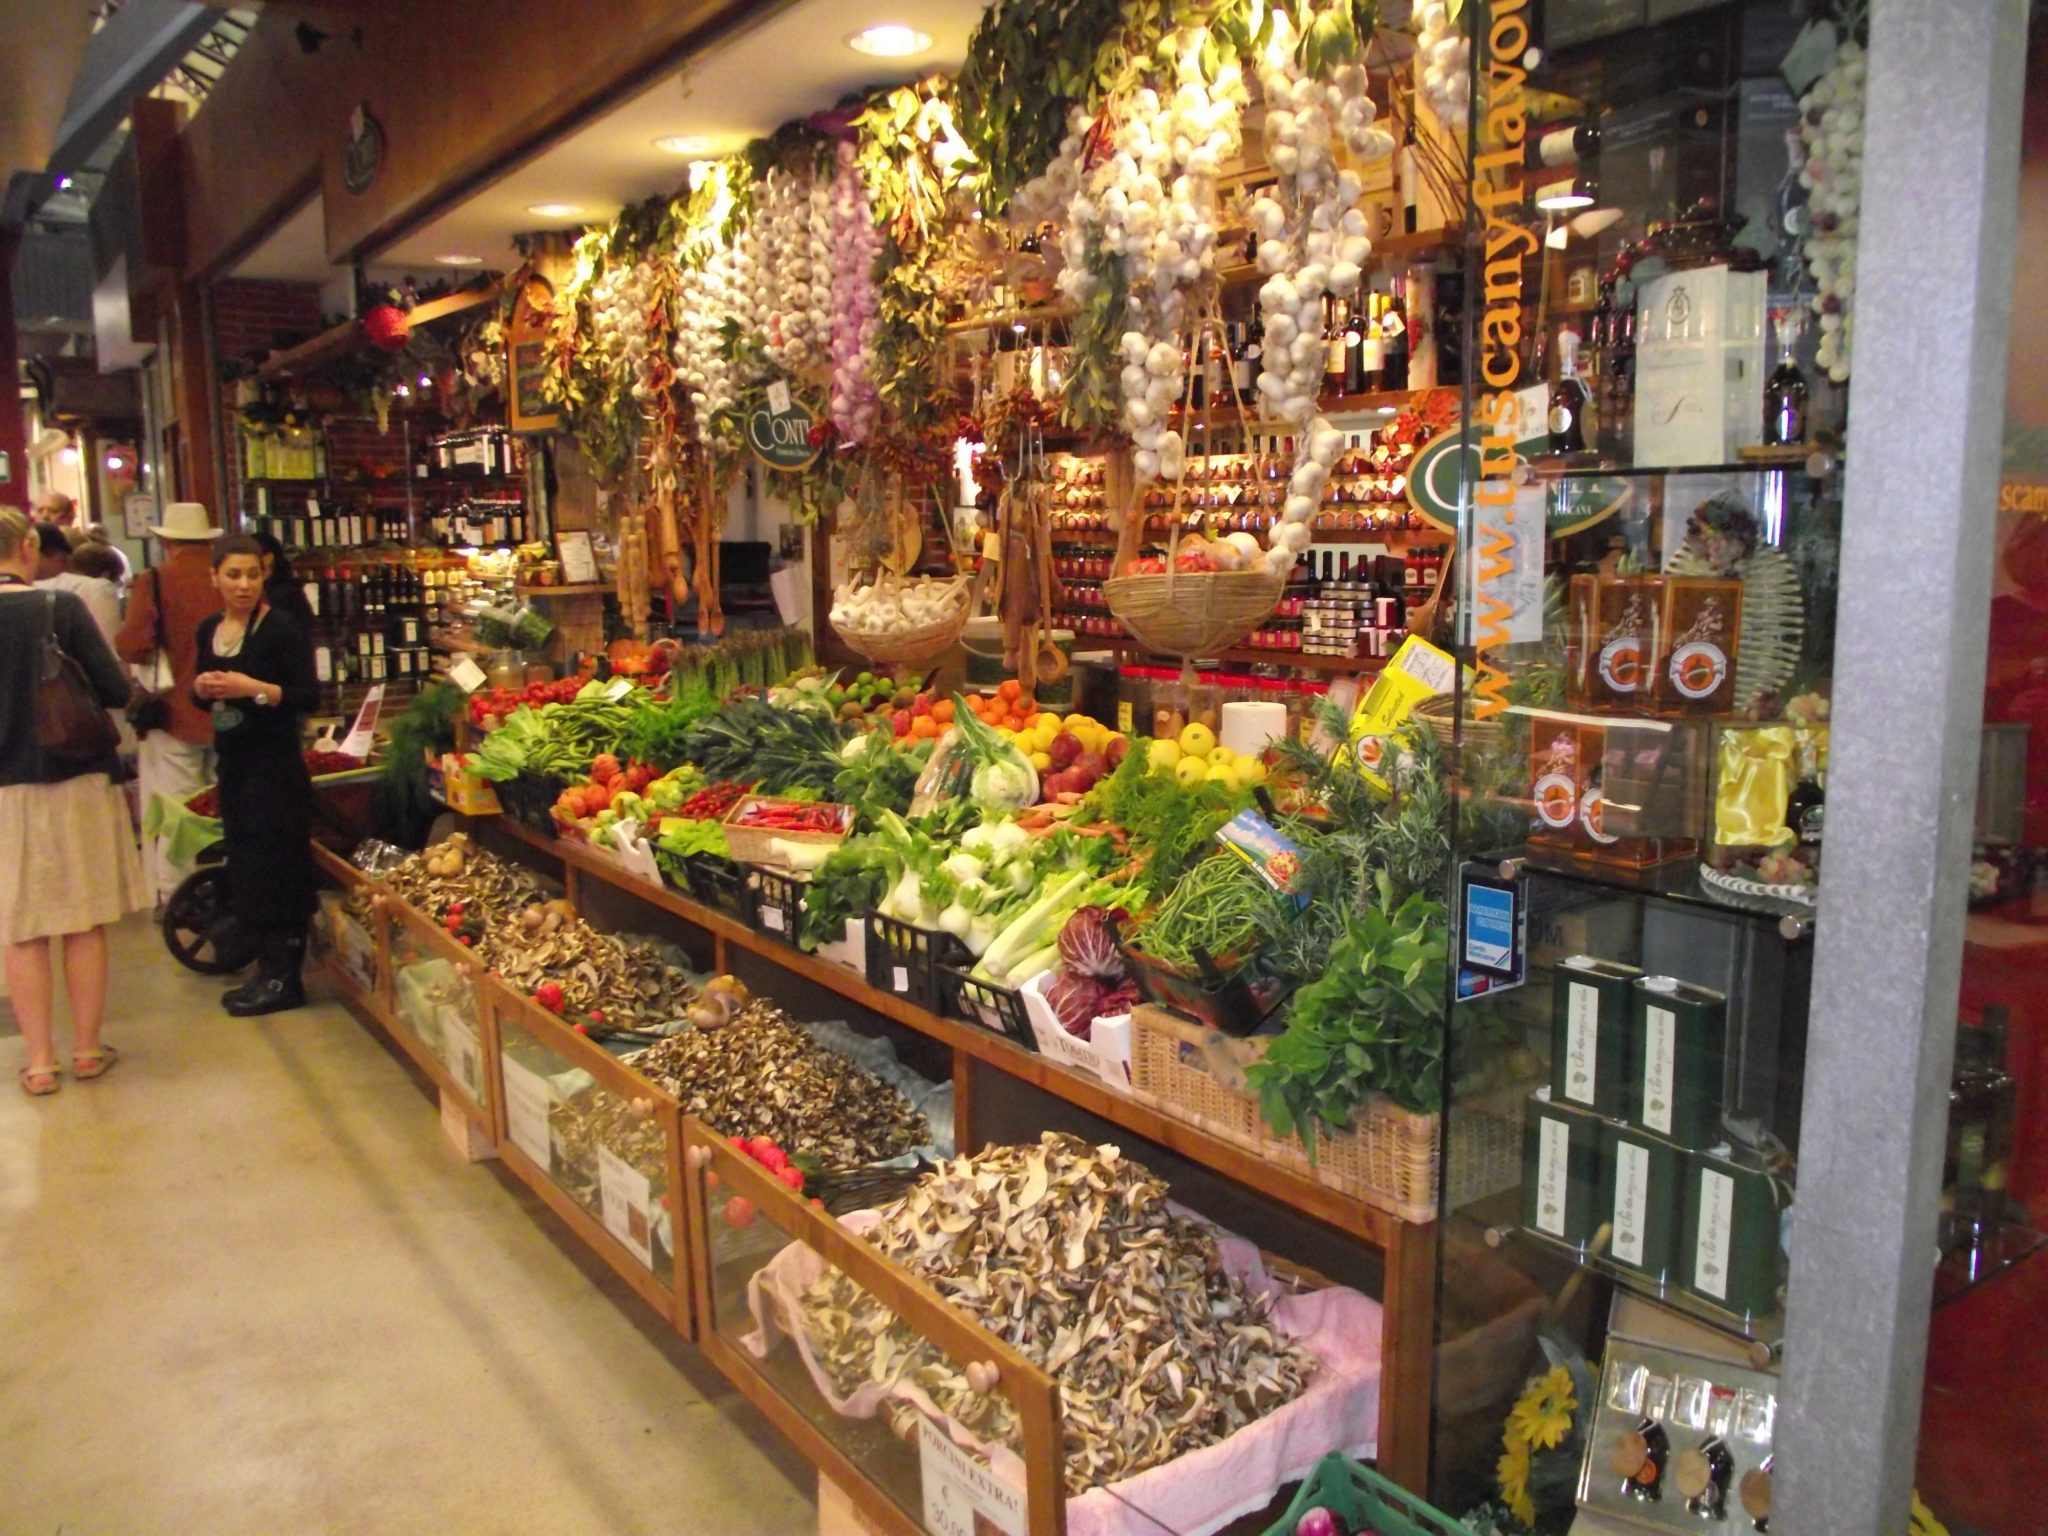 Food market in Italy